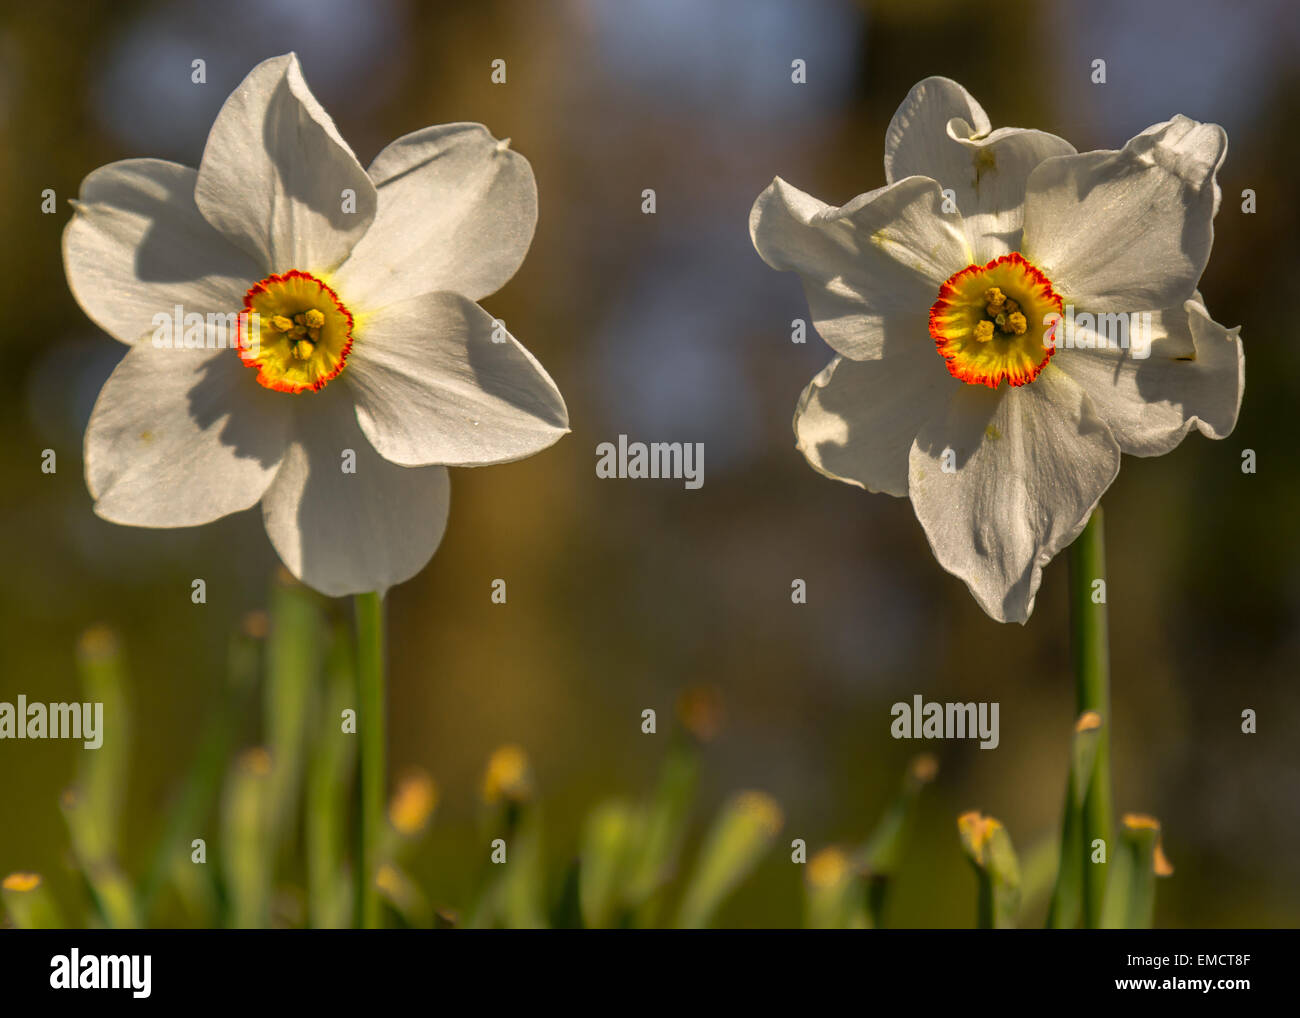 The ageing process - Two daffodils in different stages - Stock Image